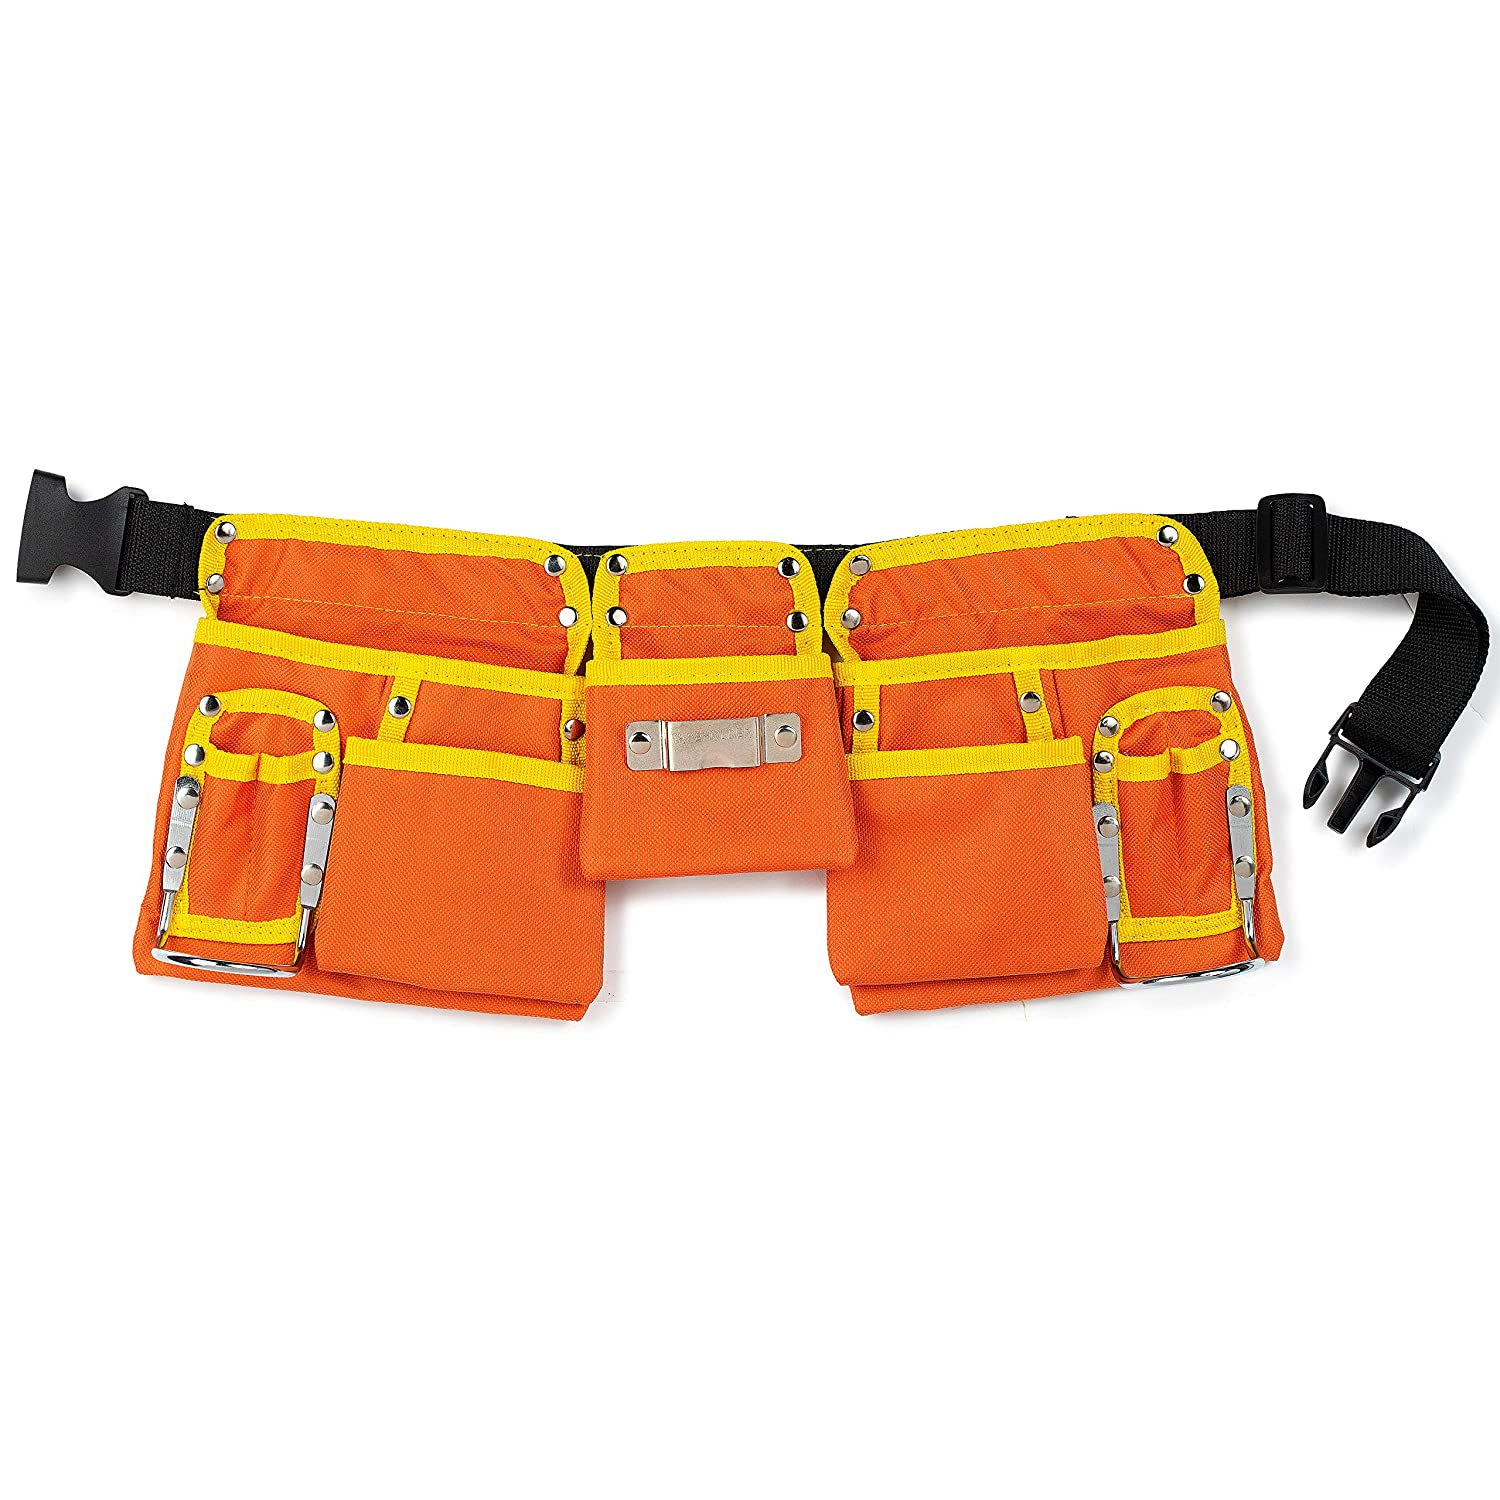 11 Pocket Brown 600D Polyester Kids Tool Belt, Work Apron Great for Pretended Play Role, with Adjustable Poly Web Belt Quick Release Buckle GlossyEnd